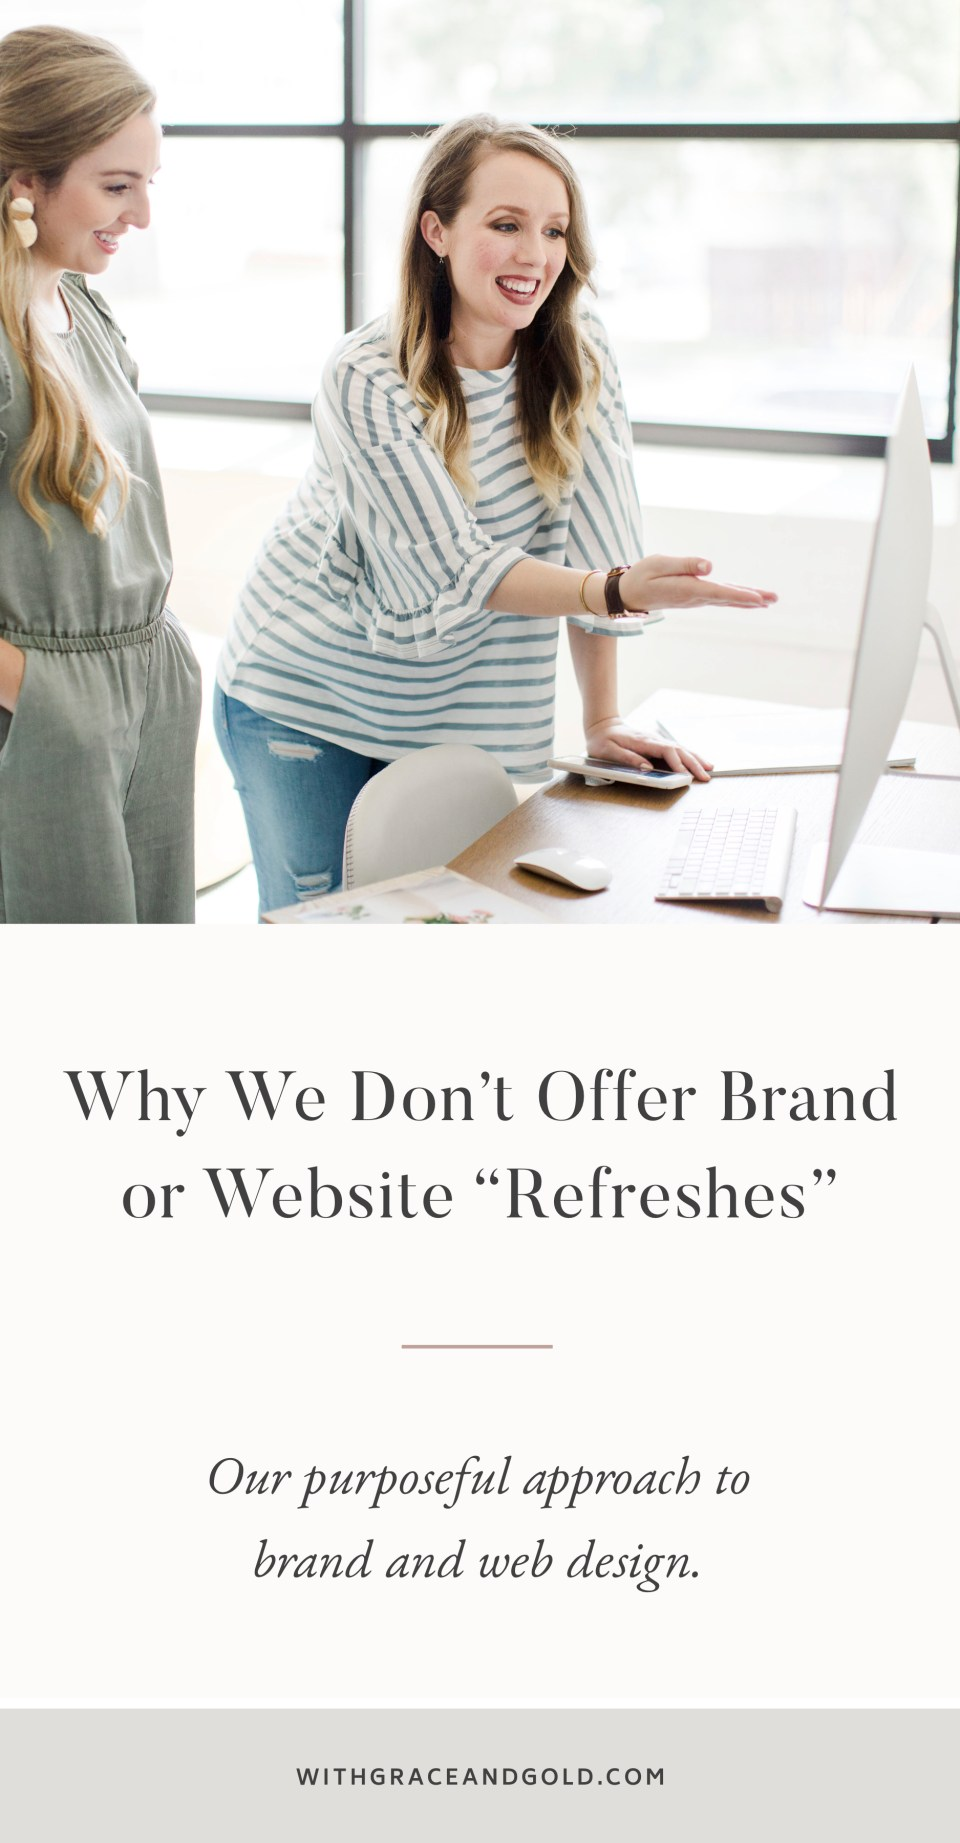 Why We Don't Offer Brand or Website Refreshes by With Grace and Gold